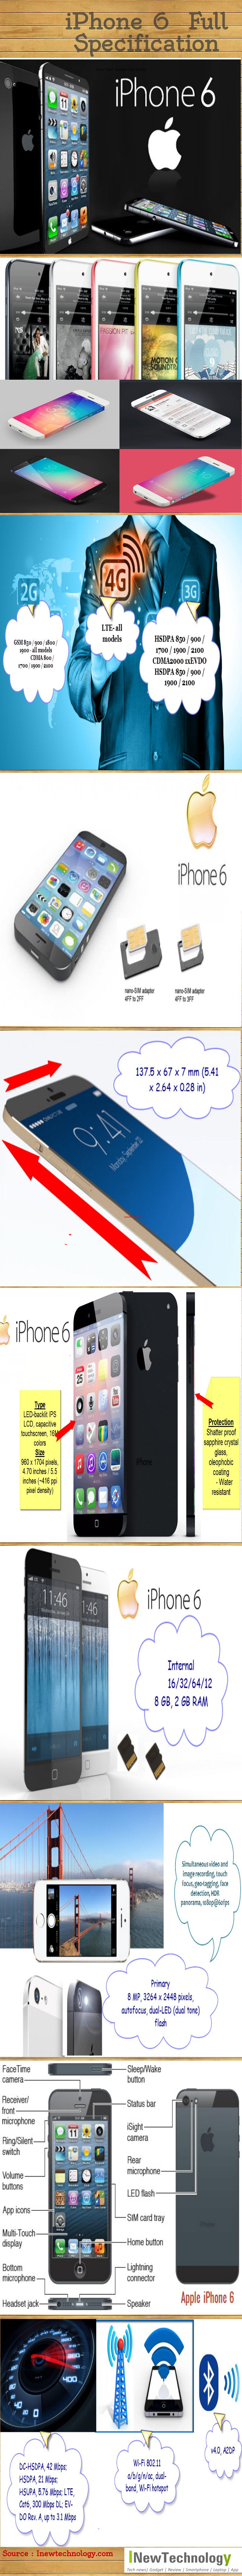 Iphone 6 Infographic Full Specification